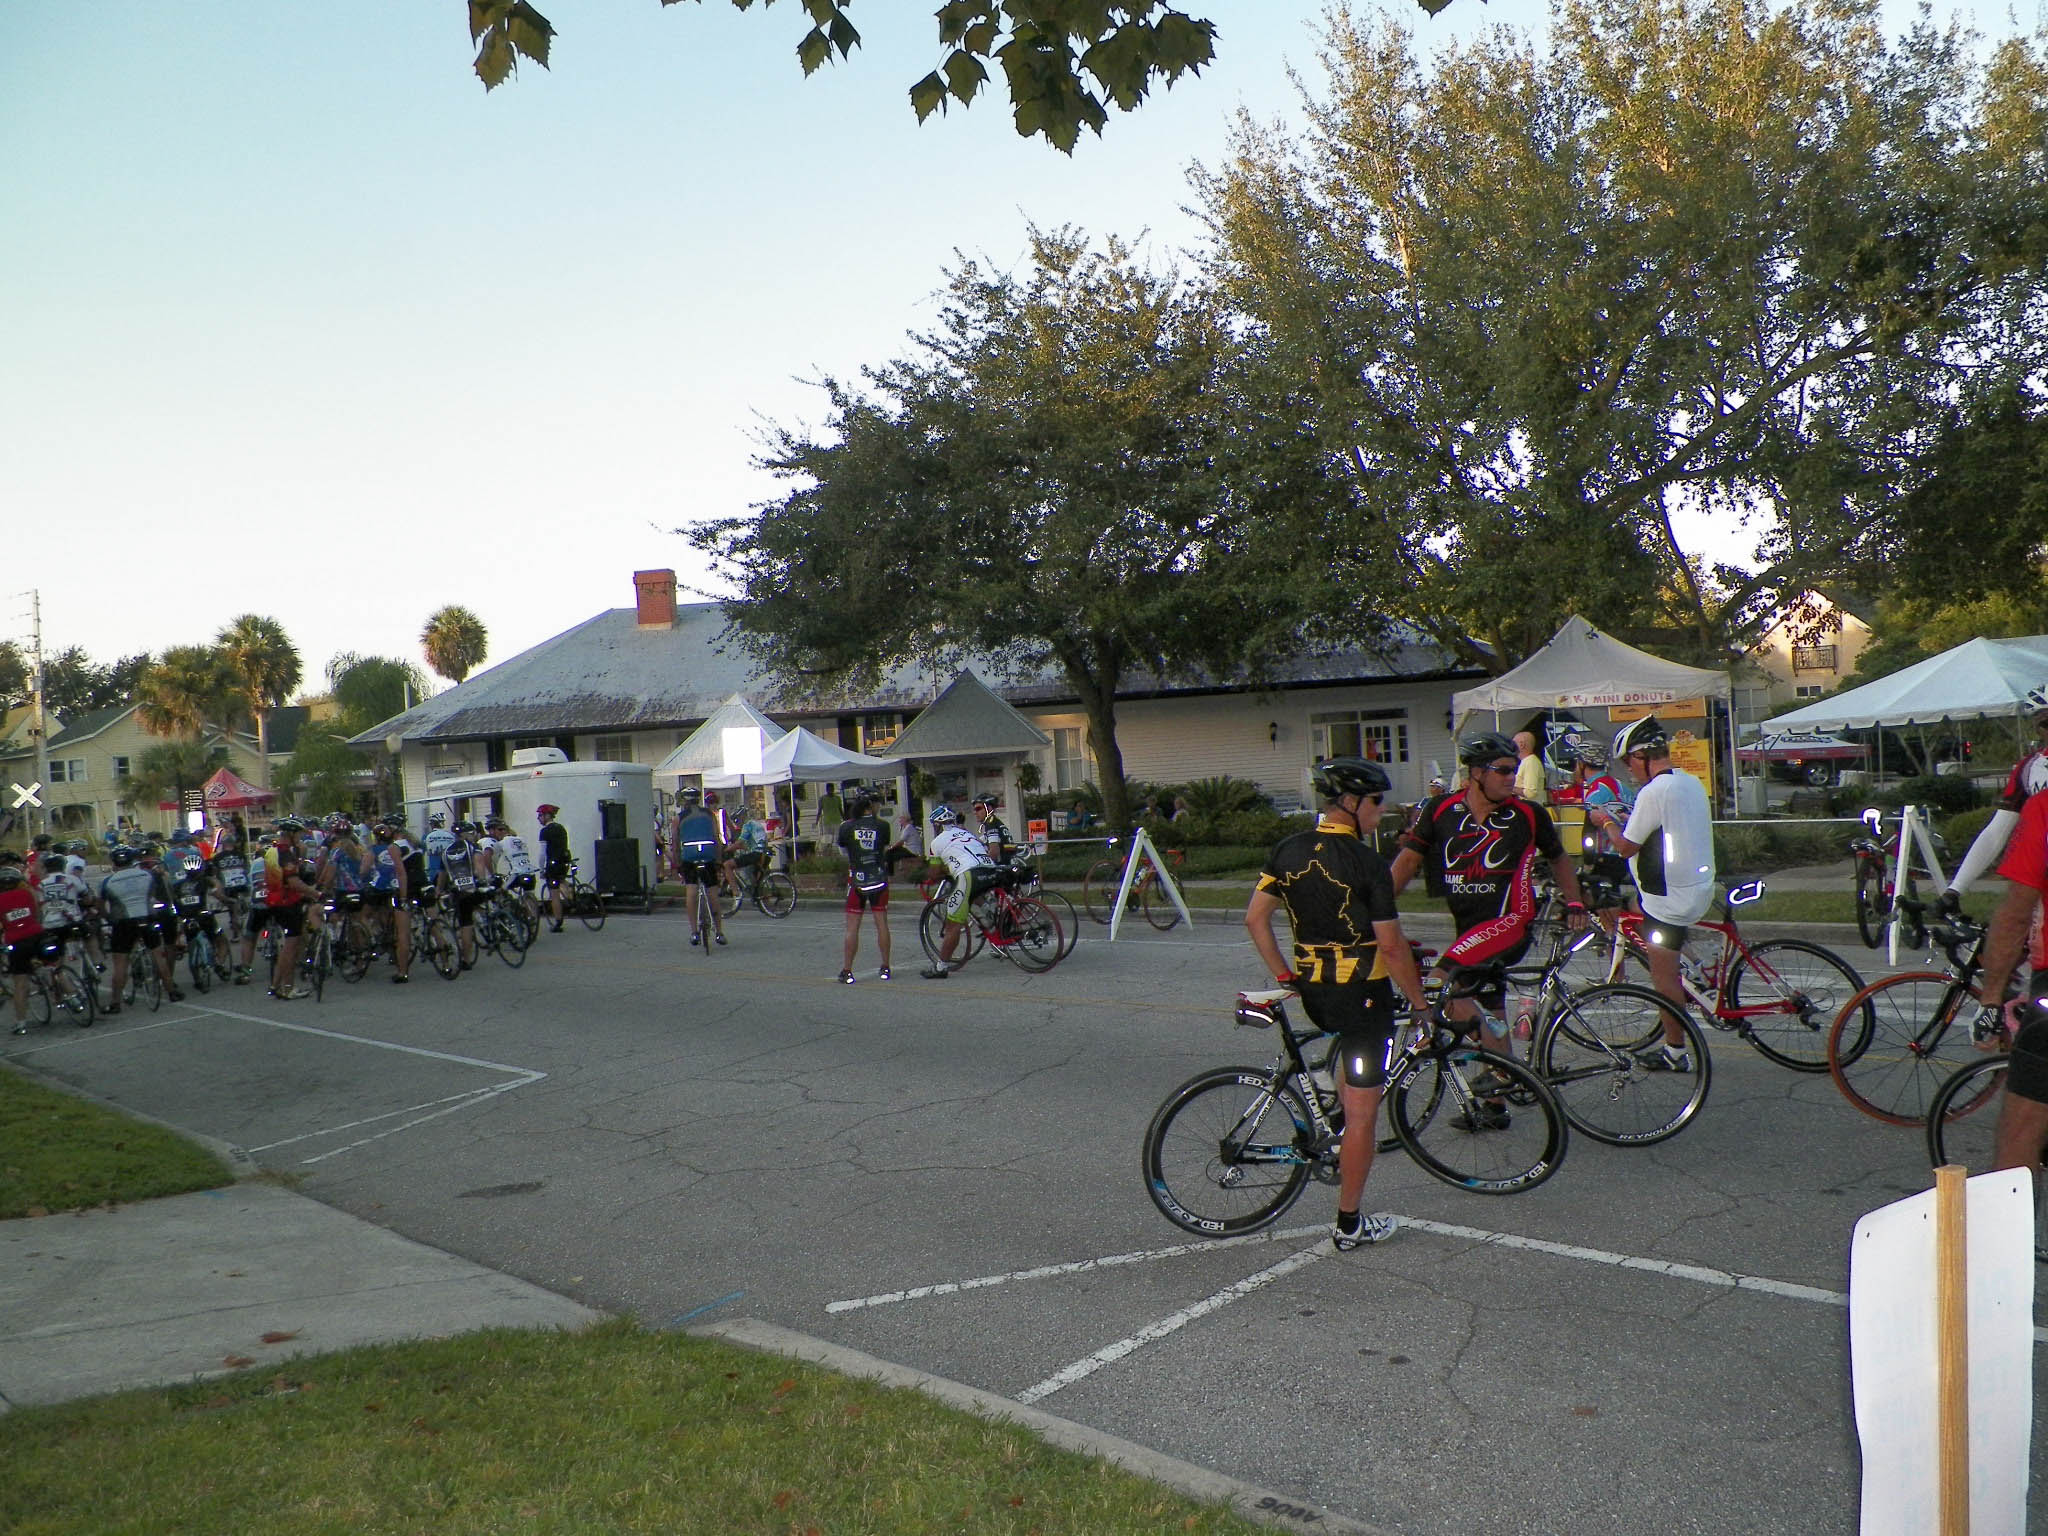 Bicycle Festival